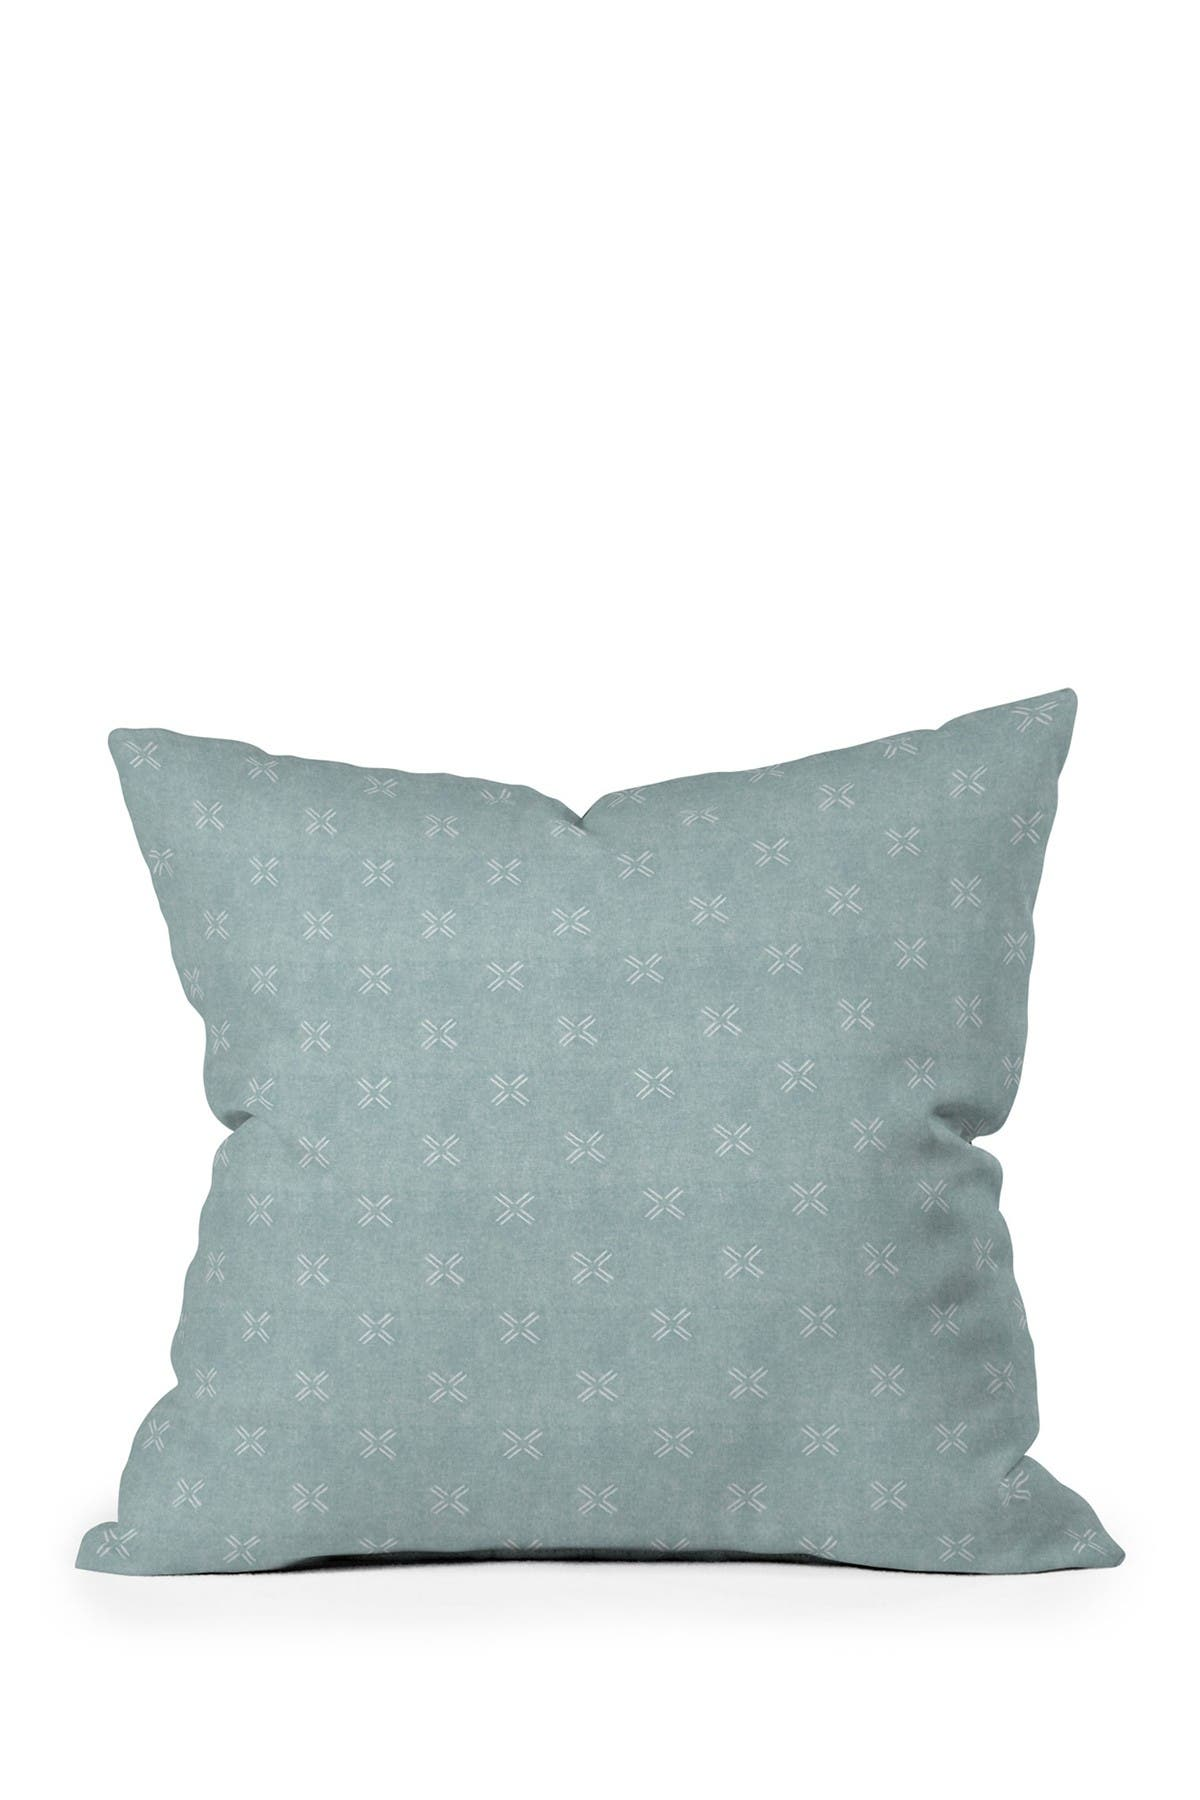 Image of Deny Designs Little Arrow Design Co Mud Cloth Cross Dusty Blue Square Throw Pillow